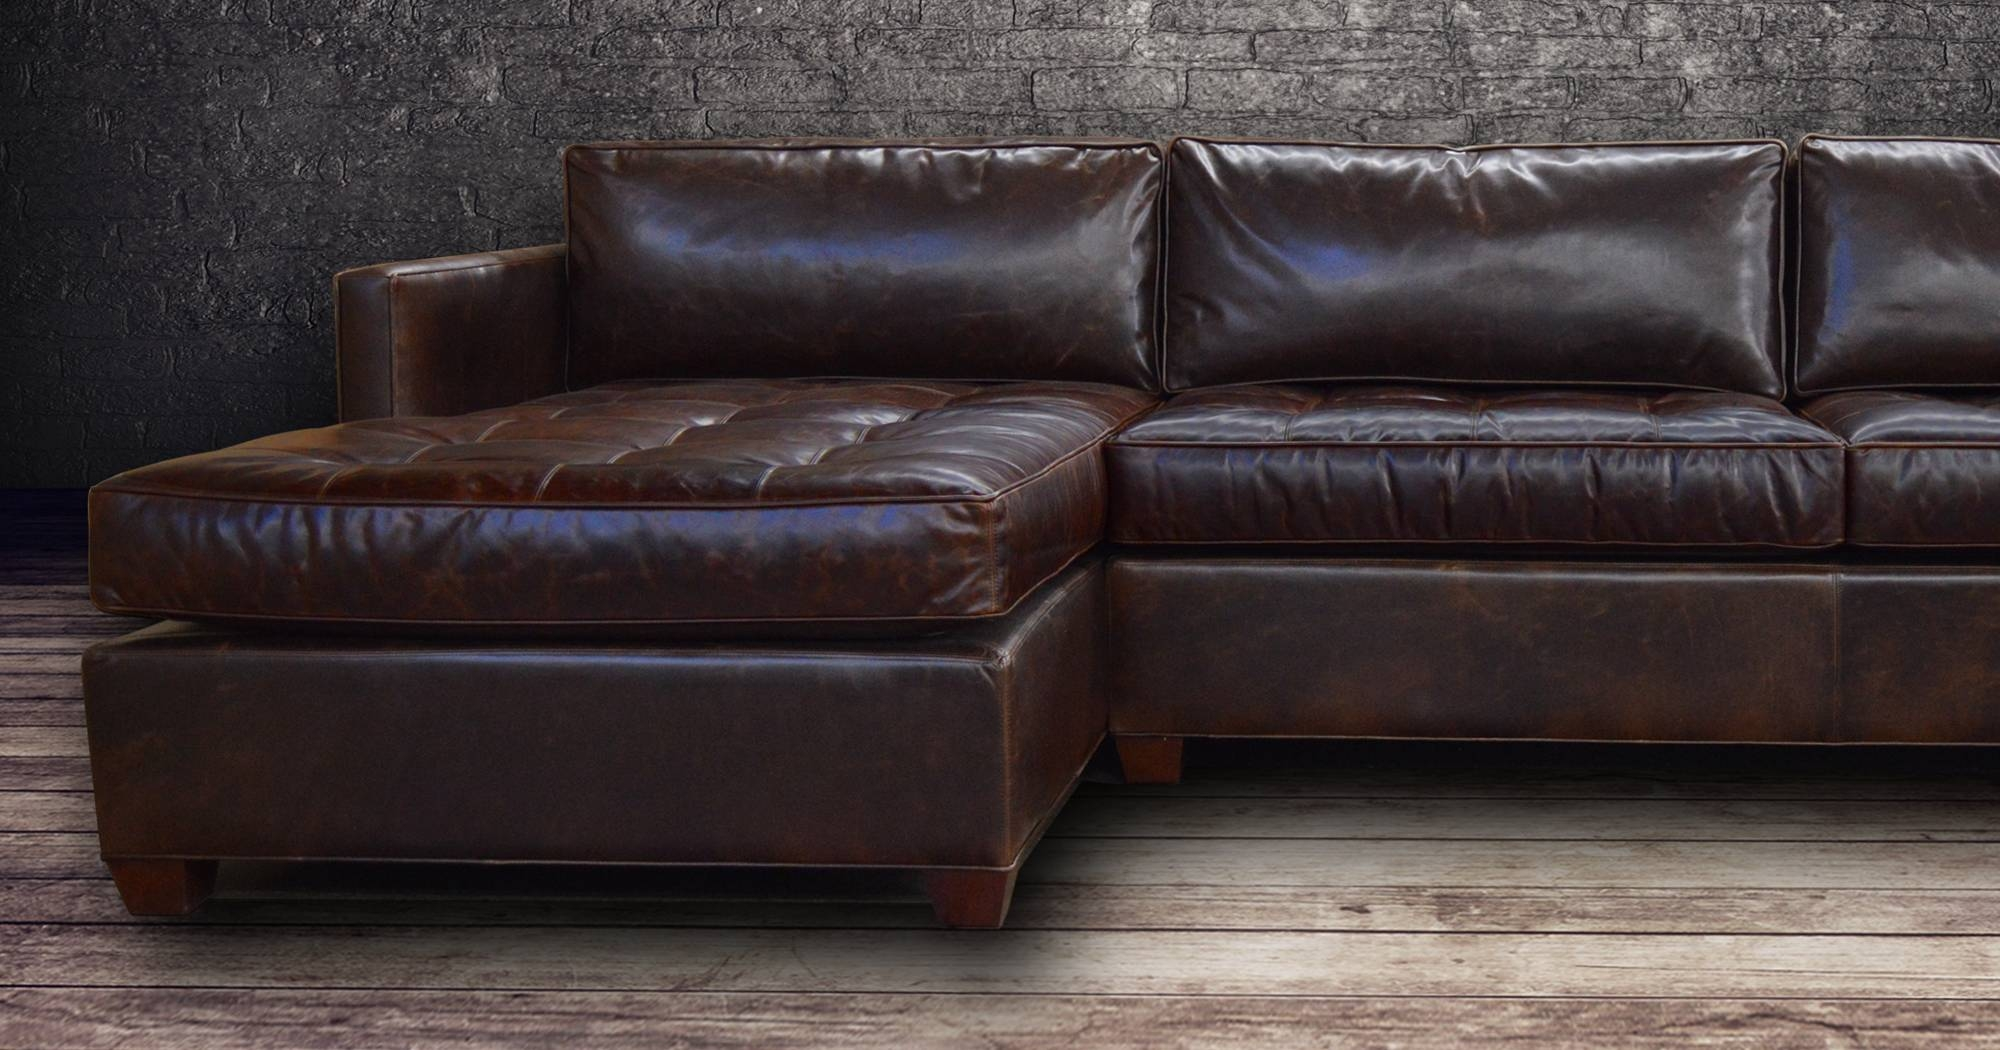 Vintage Leather Sectional Sofa - Cleanupflorida with regard to Vintage Leather Sectional Sofas (Image 28 of 30)